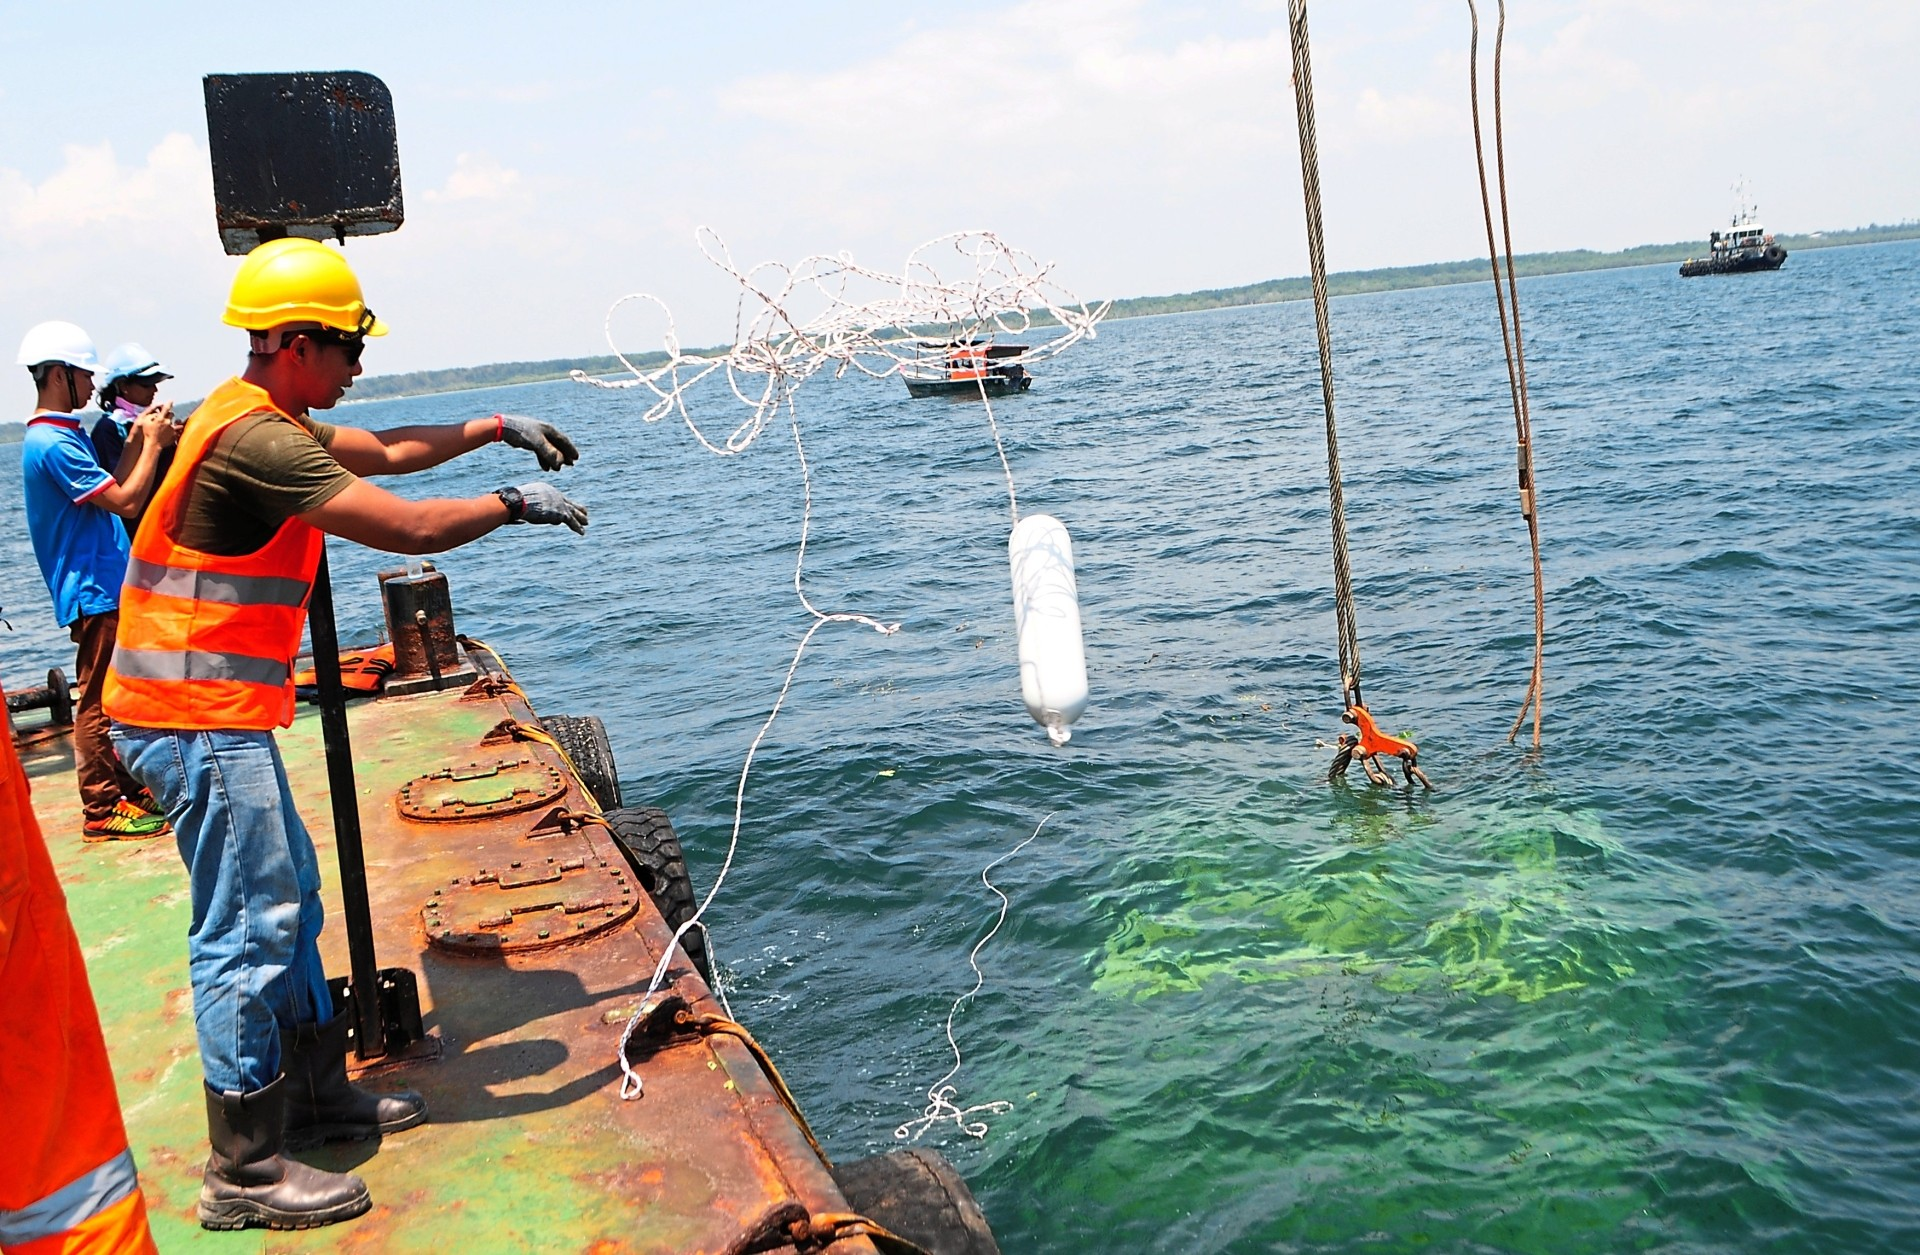 4) A worker throws a buoy which has been attached to the reef to mark its location.